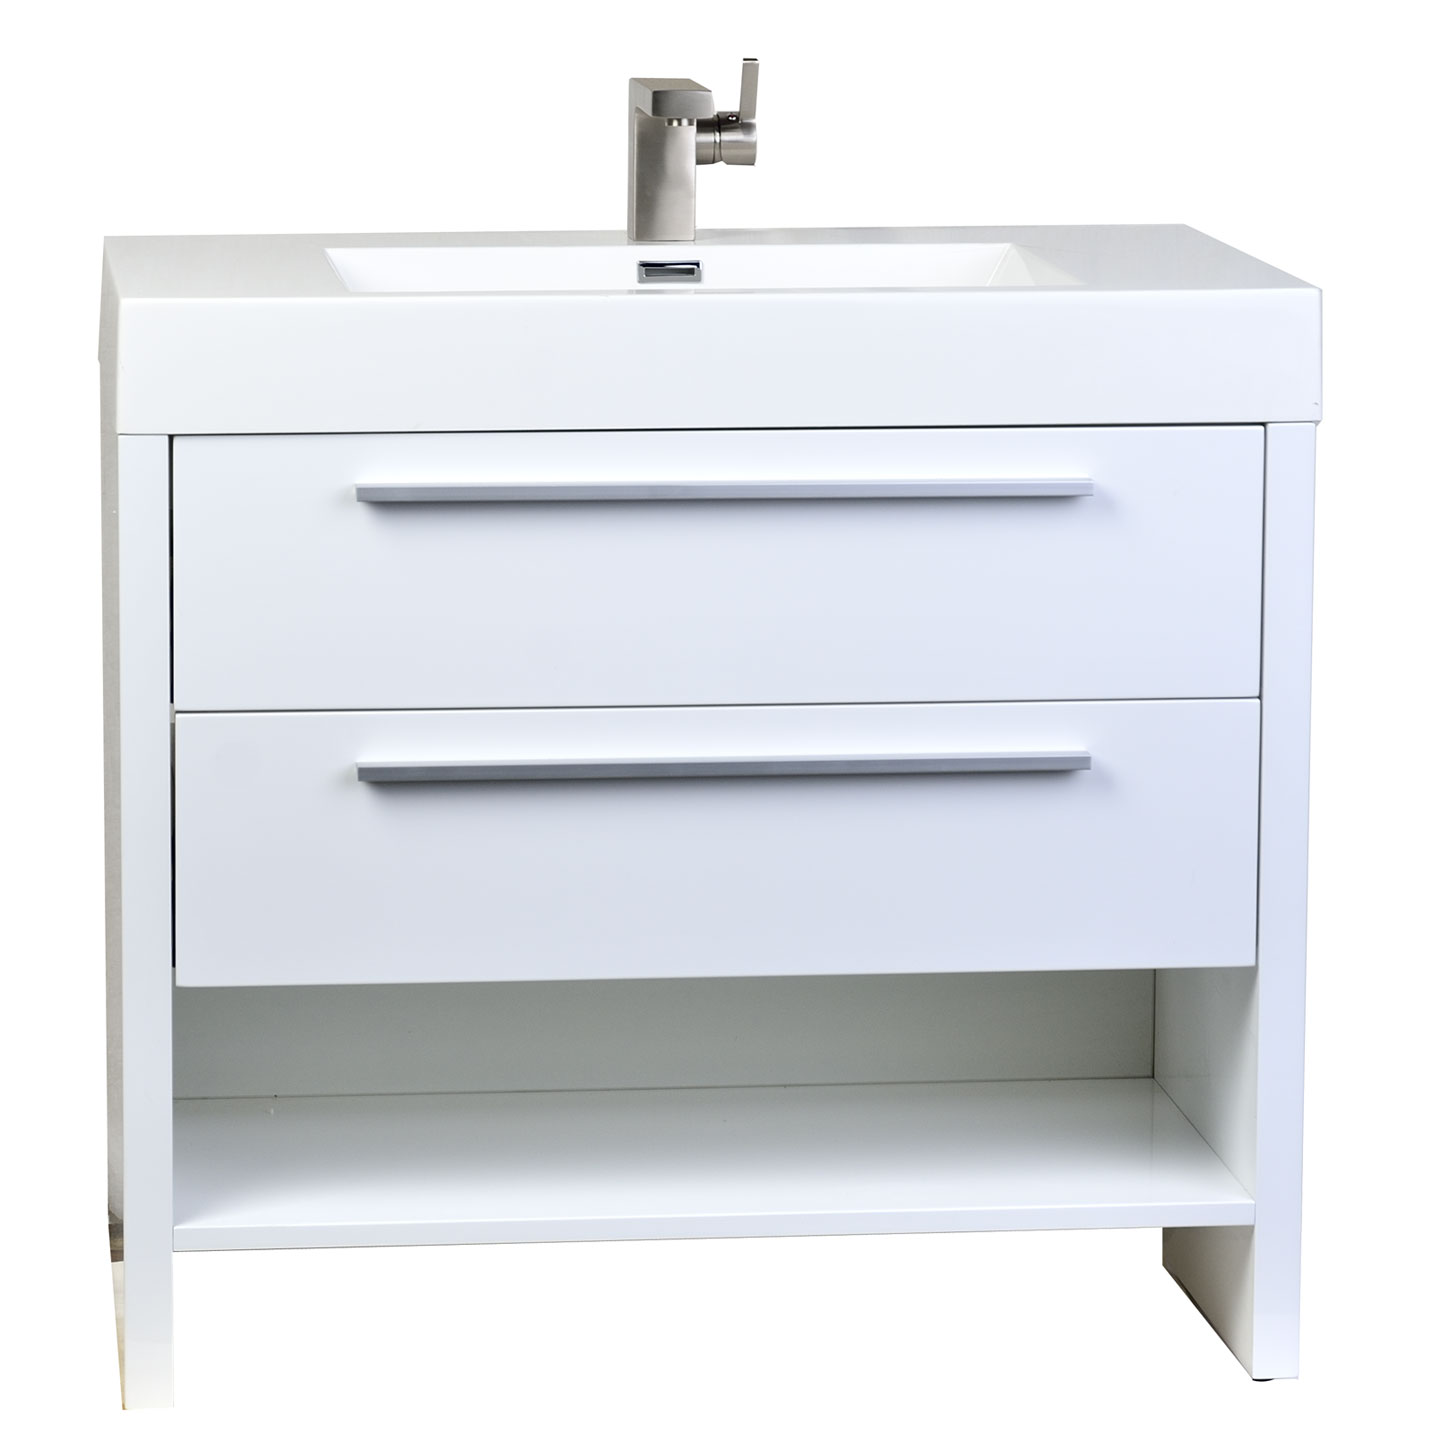 Buy mula 35 5 in modern bathroom vanity high gloss white for Bathroom cabinets 36